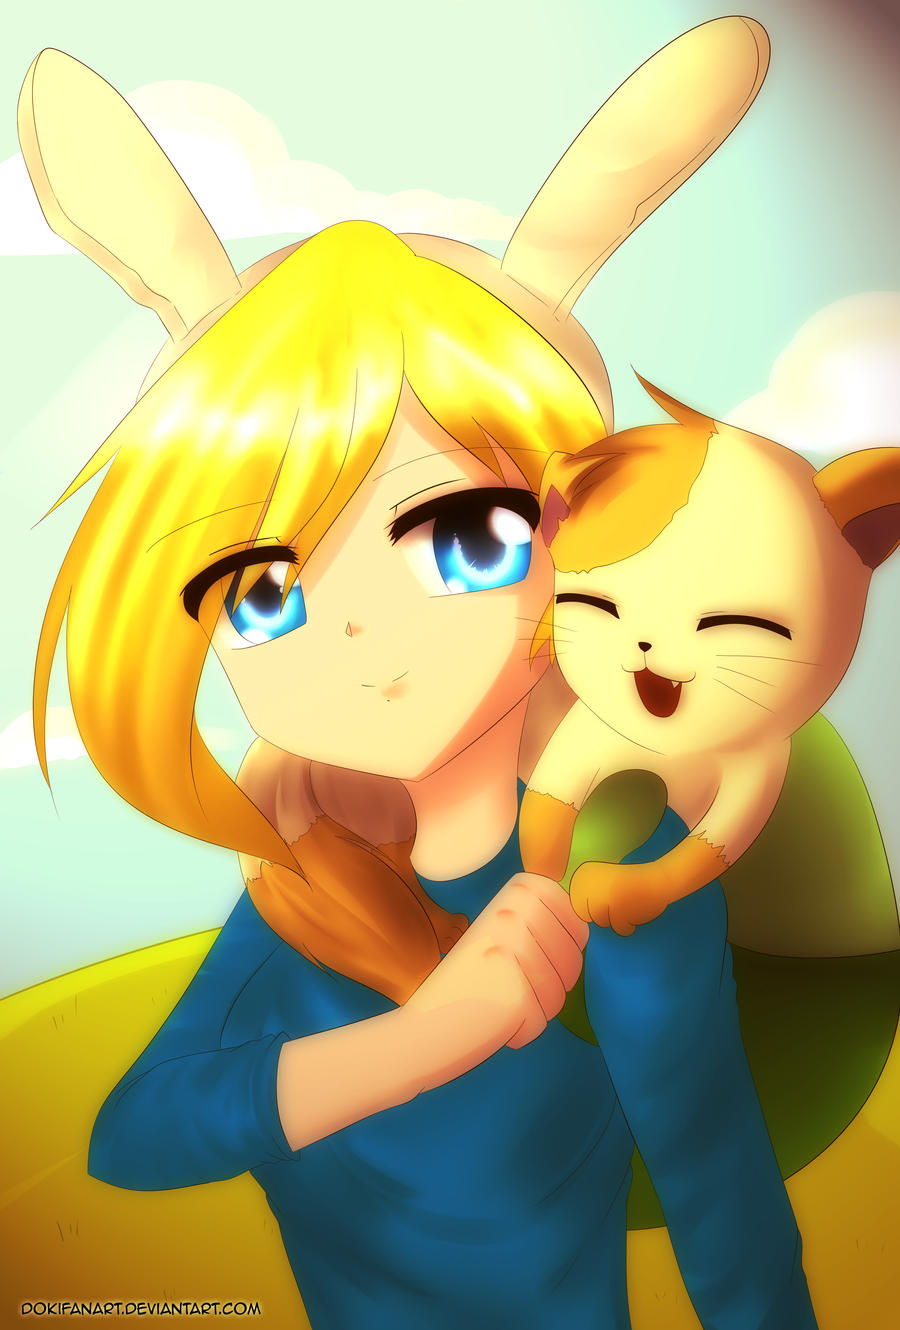 Adventure time - Fionna and Cake Anime Version by ...